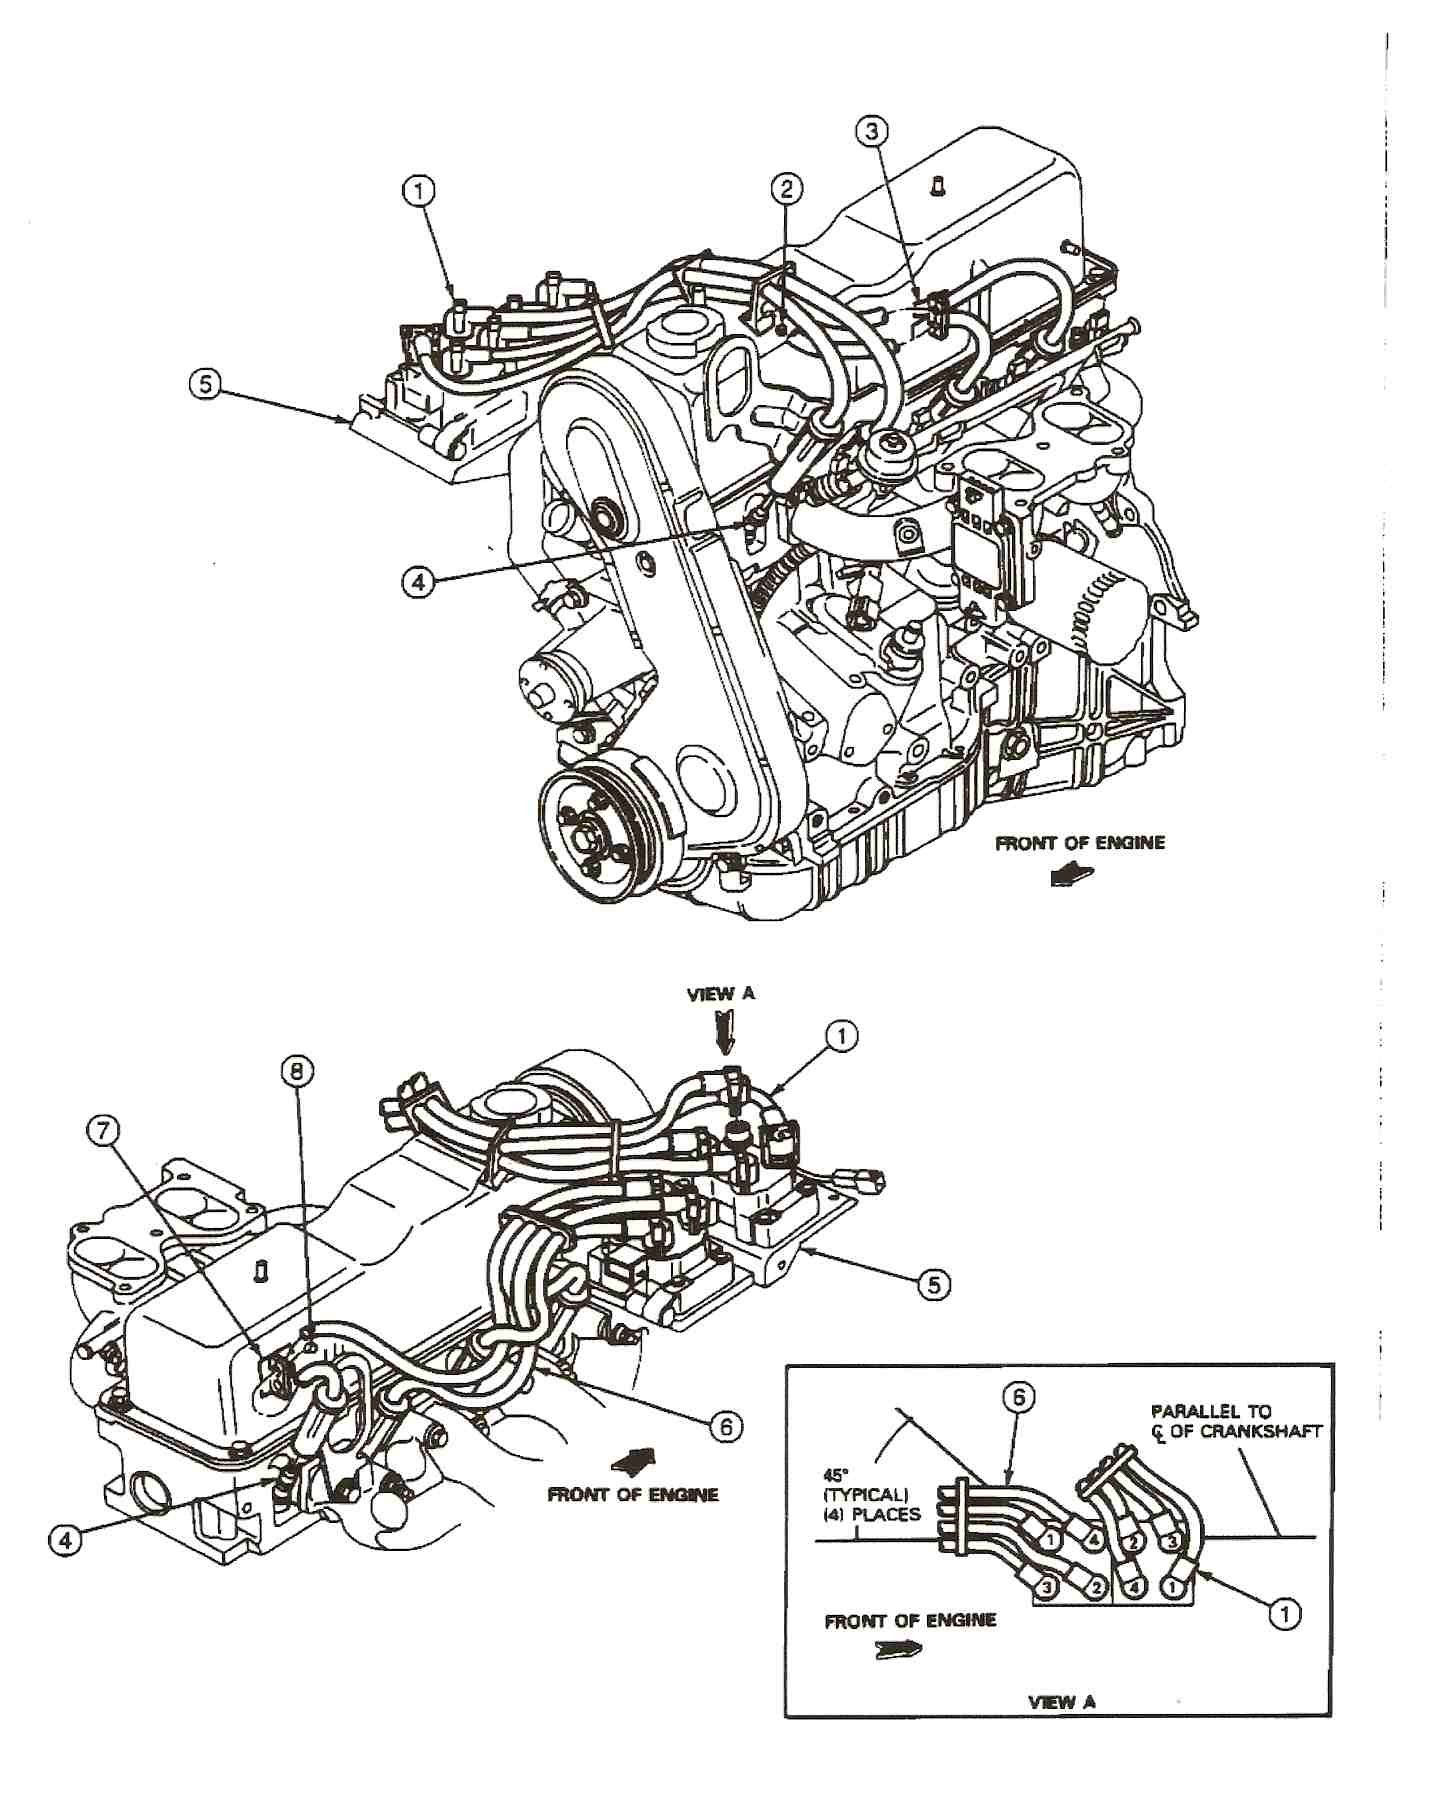 1999 Mazda B2500 Engine Diagram Wiring Library 2004 Tribute B3000 Automotive Block U2022 2001 Fuse